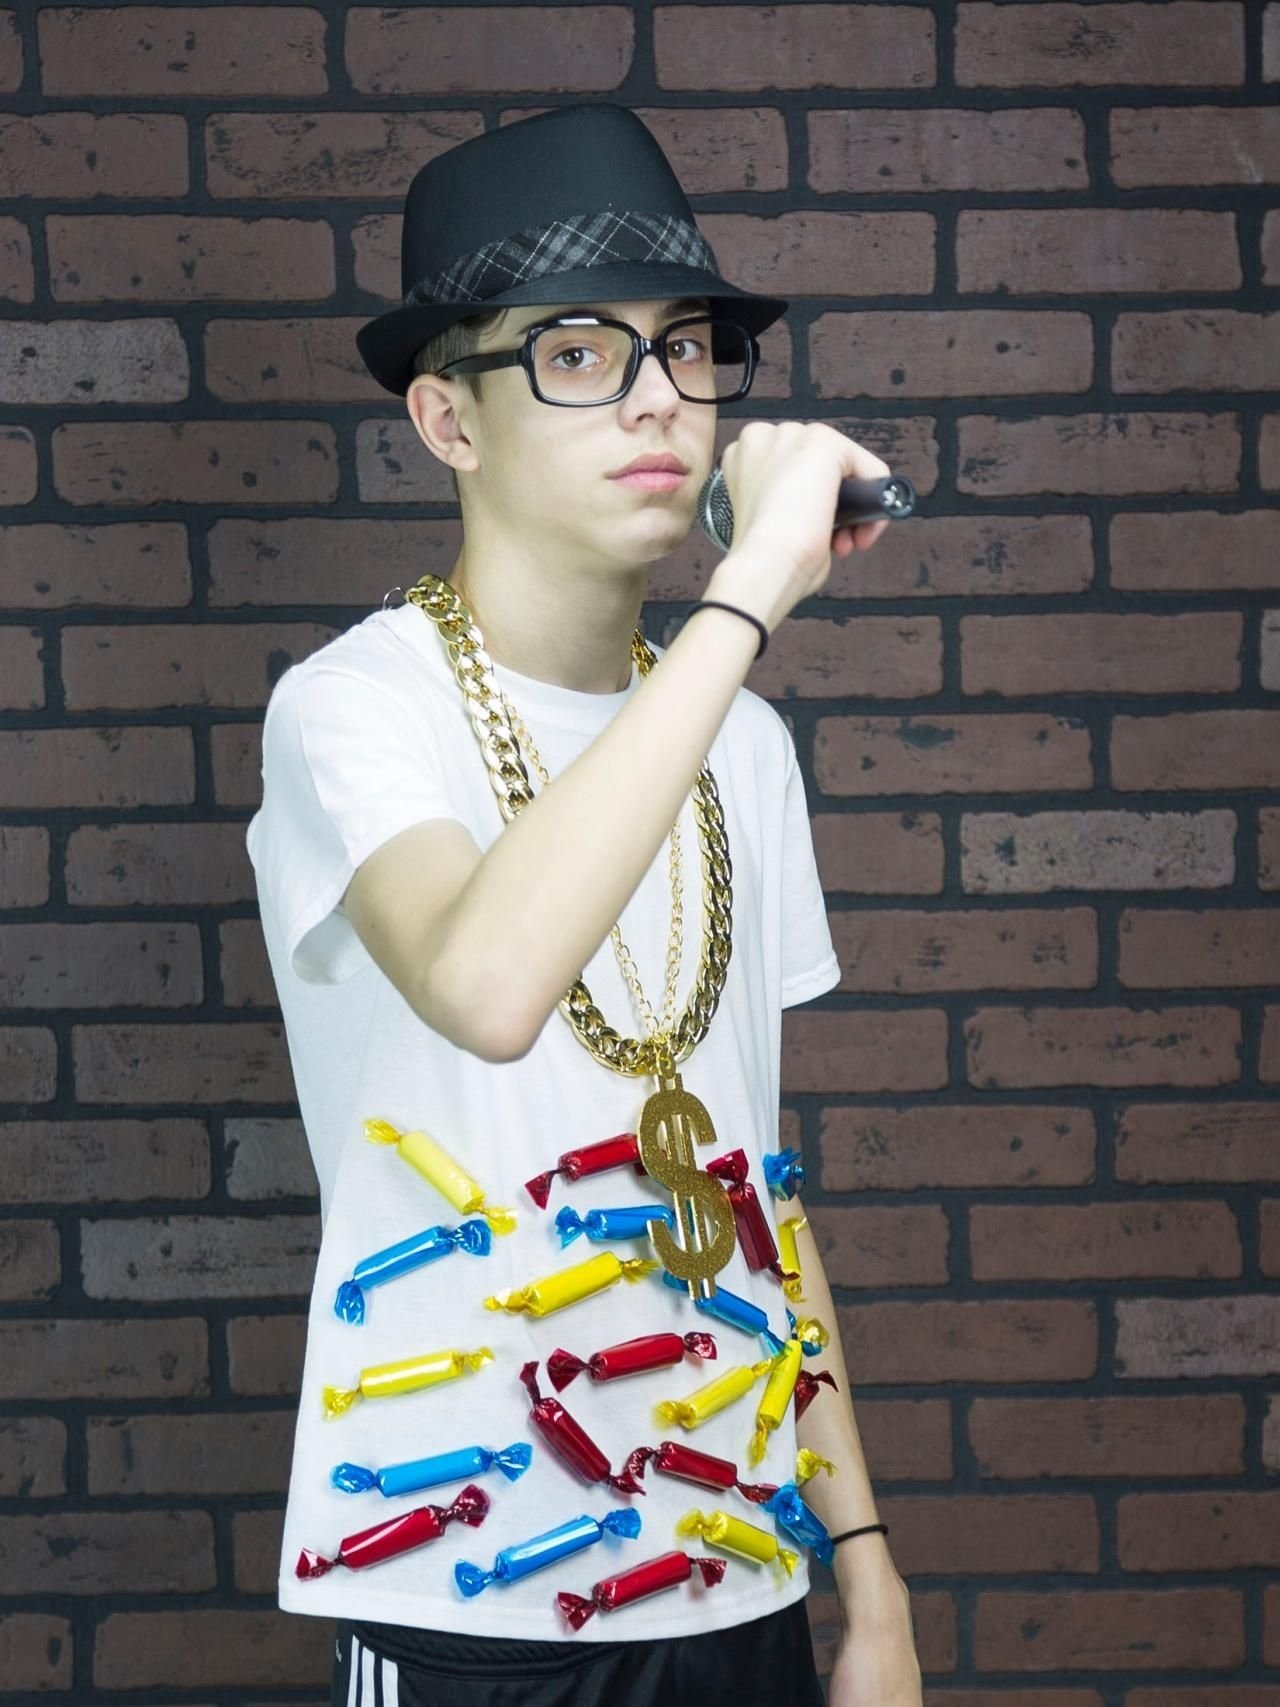 easy budget halloween costume: hip hop candy rapper | easy budget